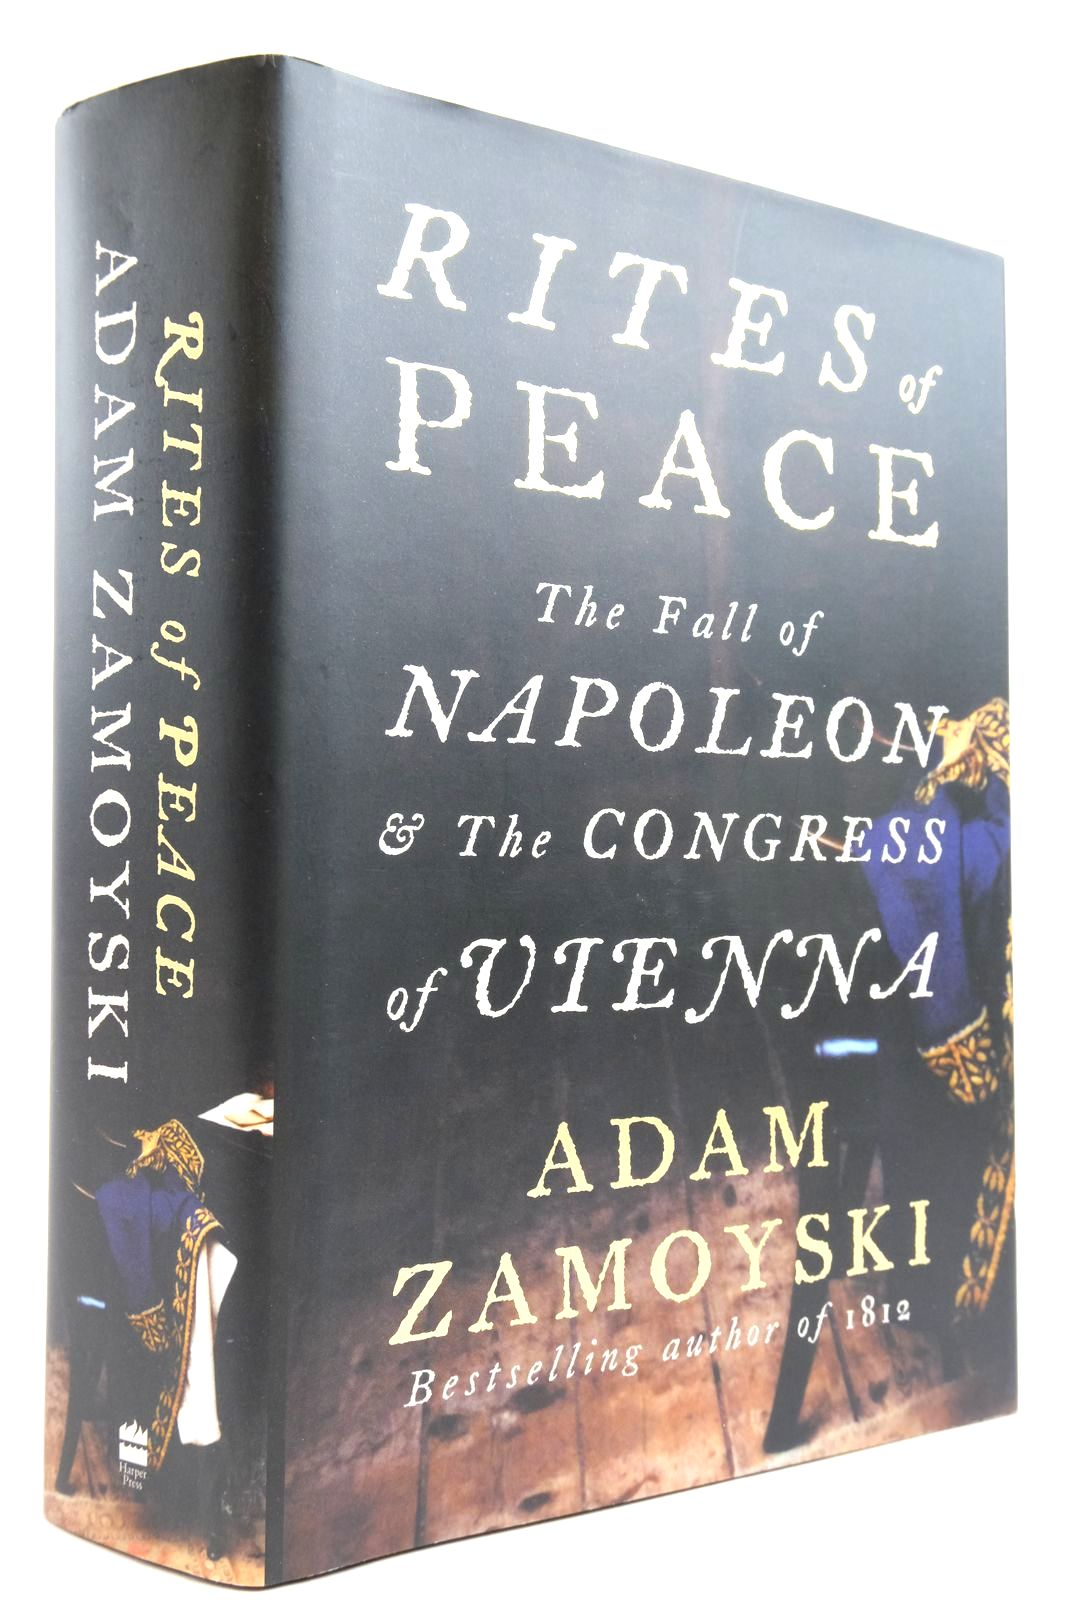 Photo of RITES OF PEACE THE FALL OF NAPOLEON & THE CONGRESS OF VIENNA- Stock Number: 2135394